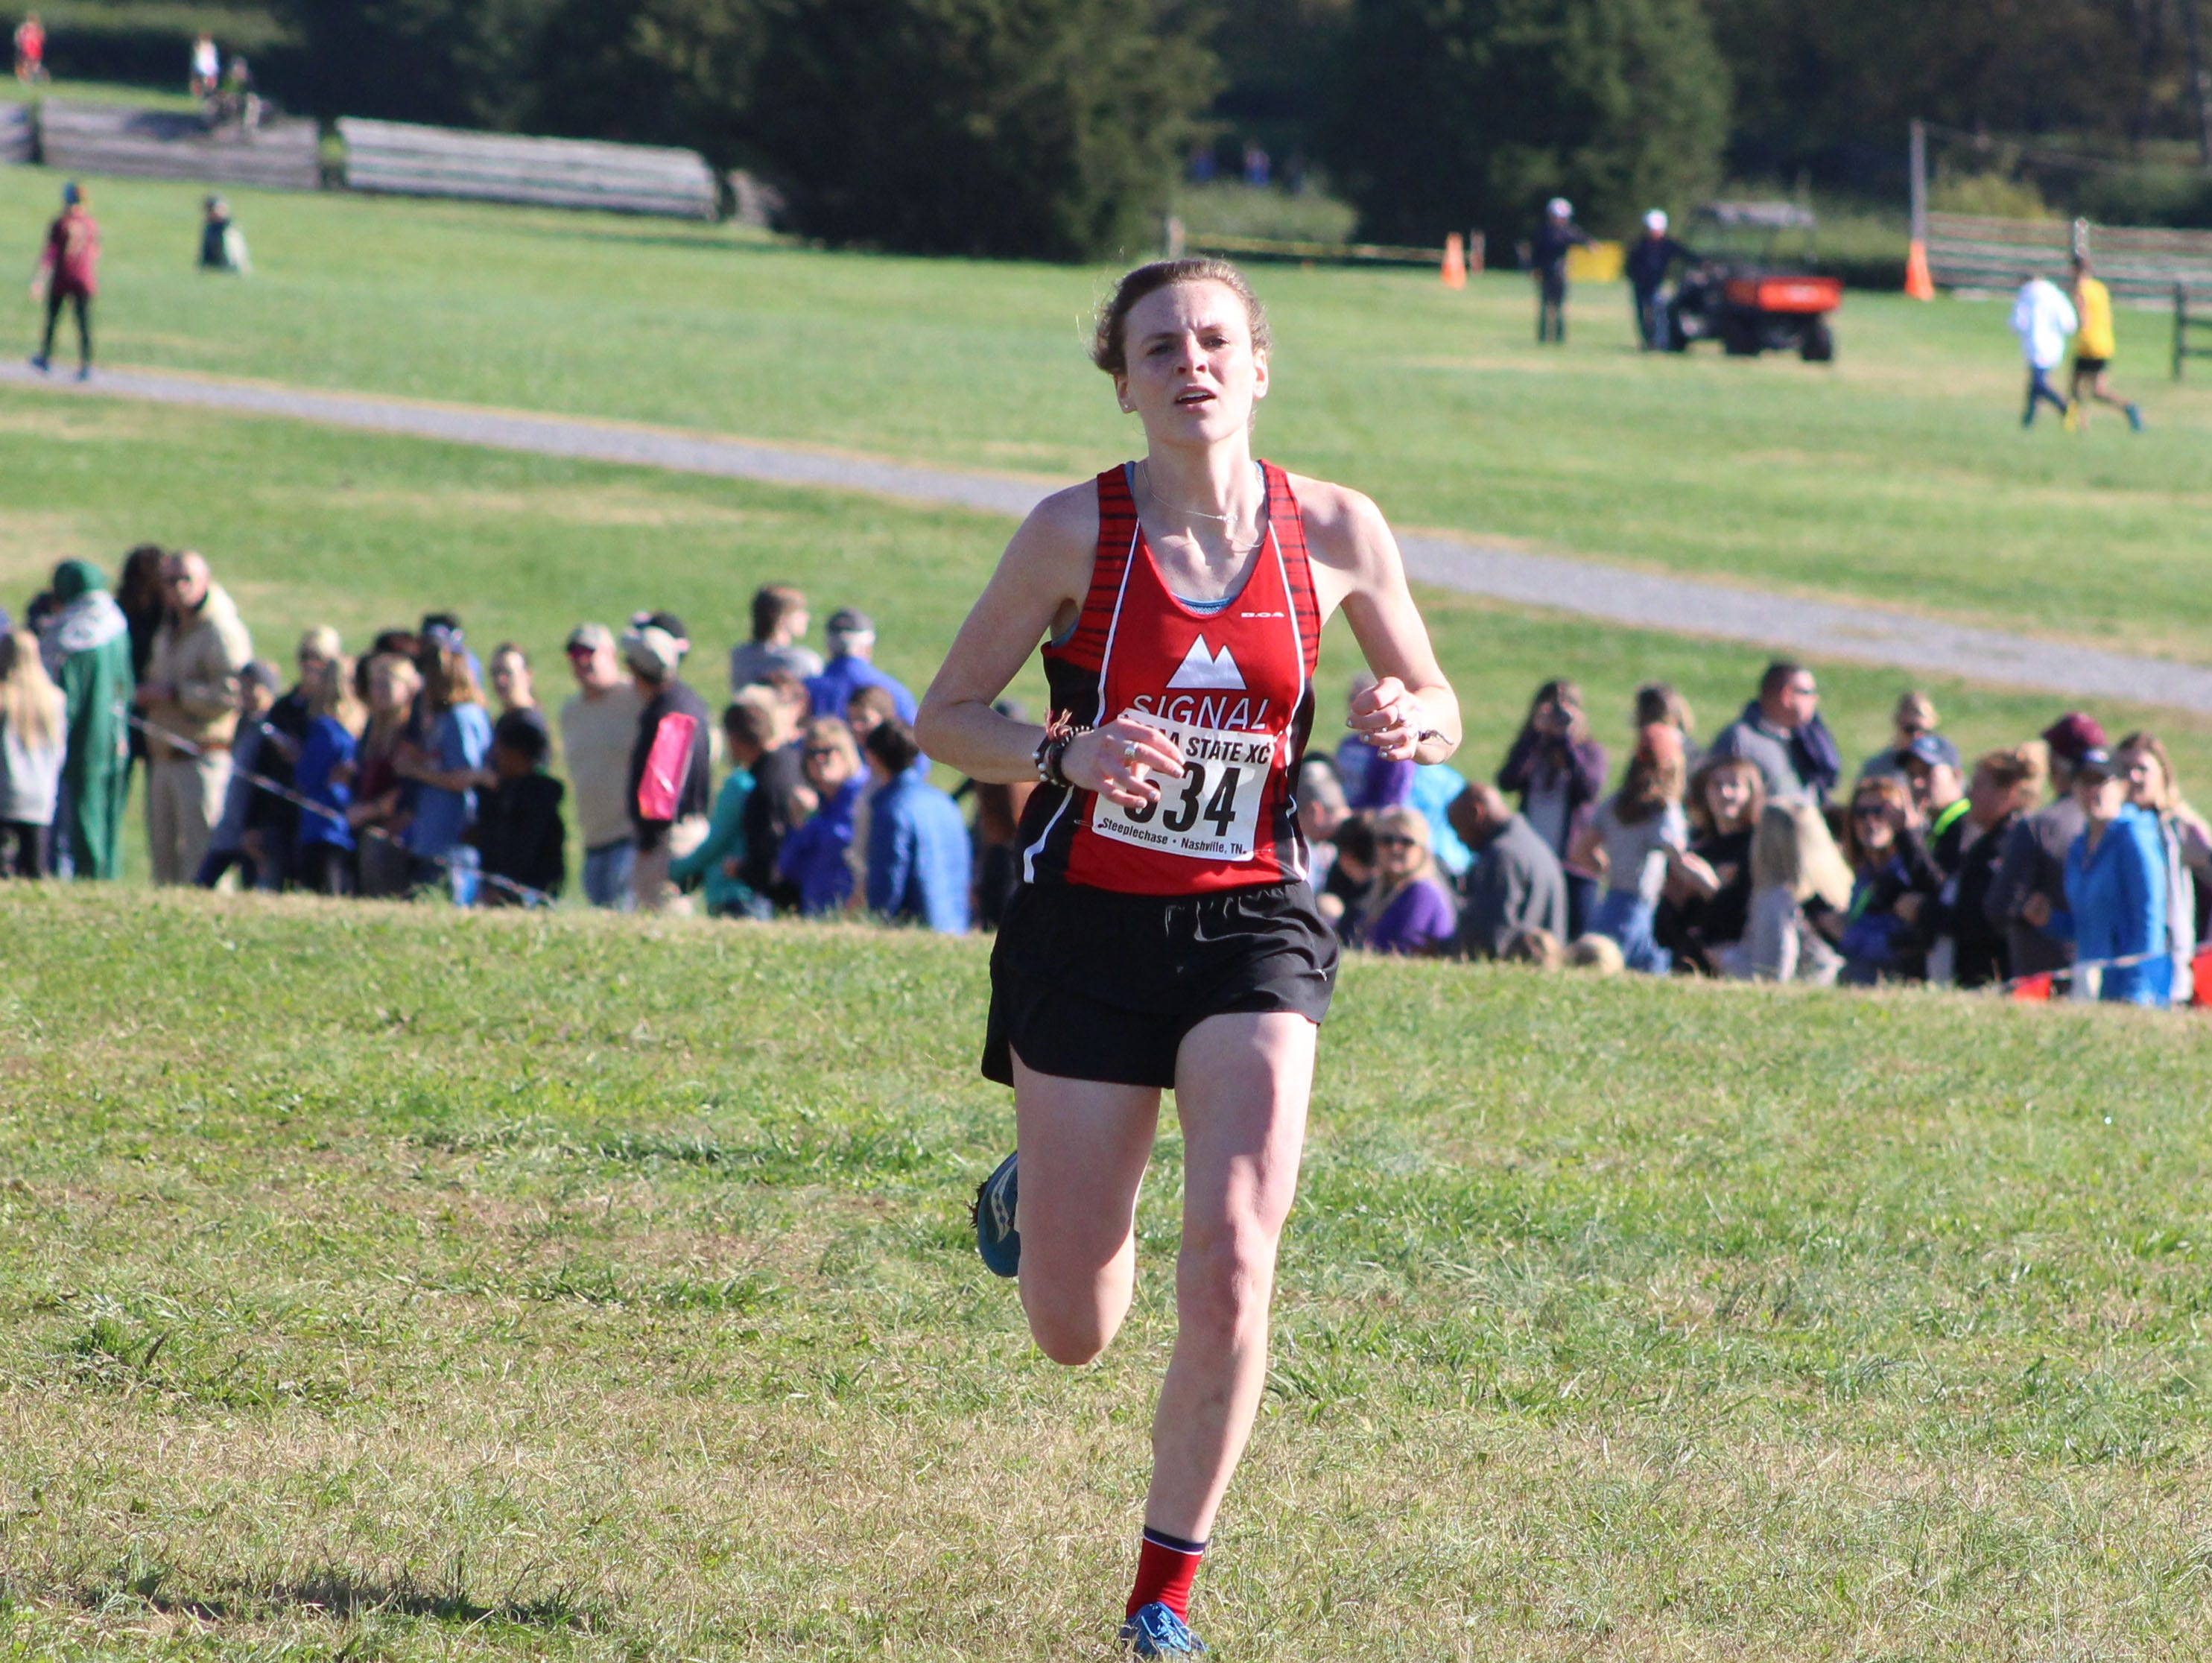 Signal Mountain's Mattie Parker finished second in the TSSAA Small School girls cross country championship on Saturday at Percy Warner Park with a time of 19:53.66.